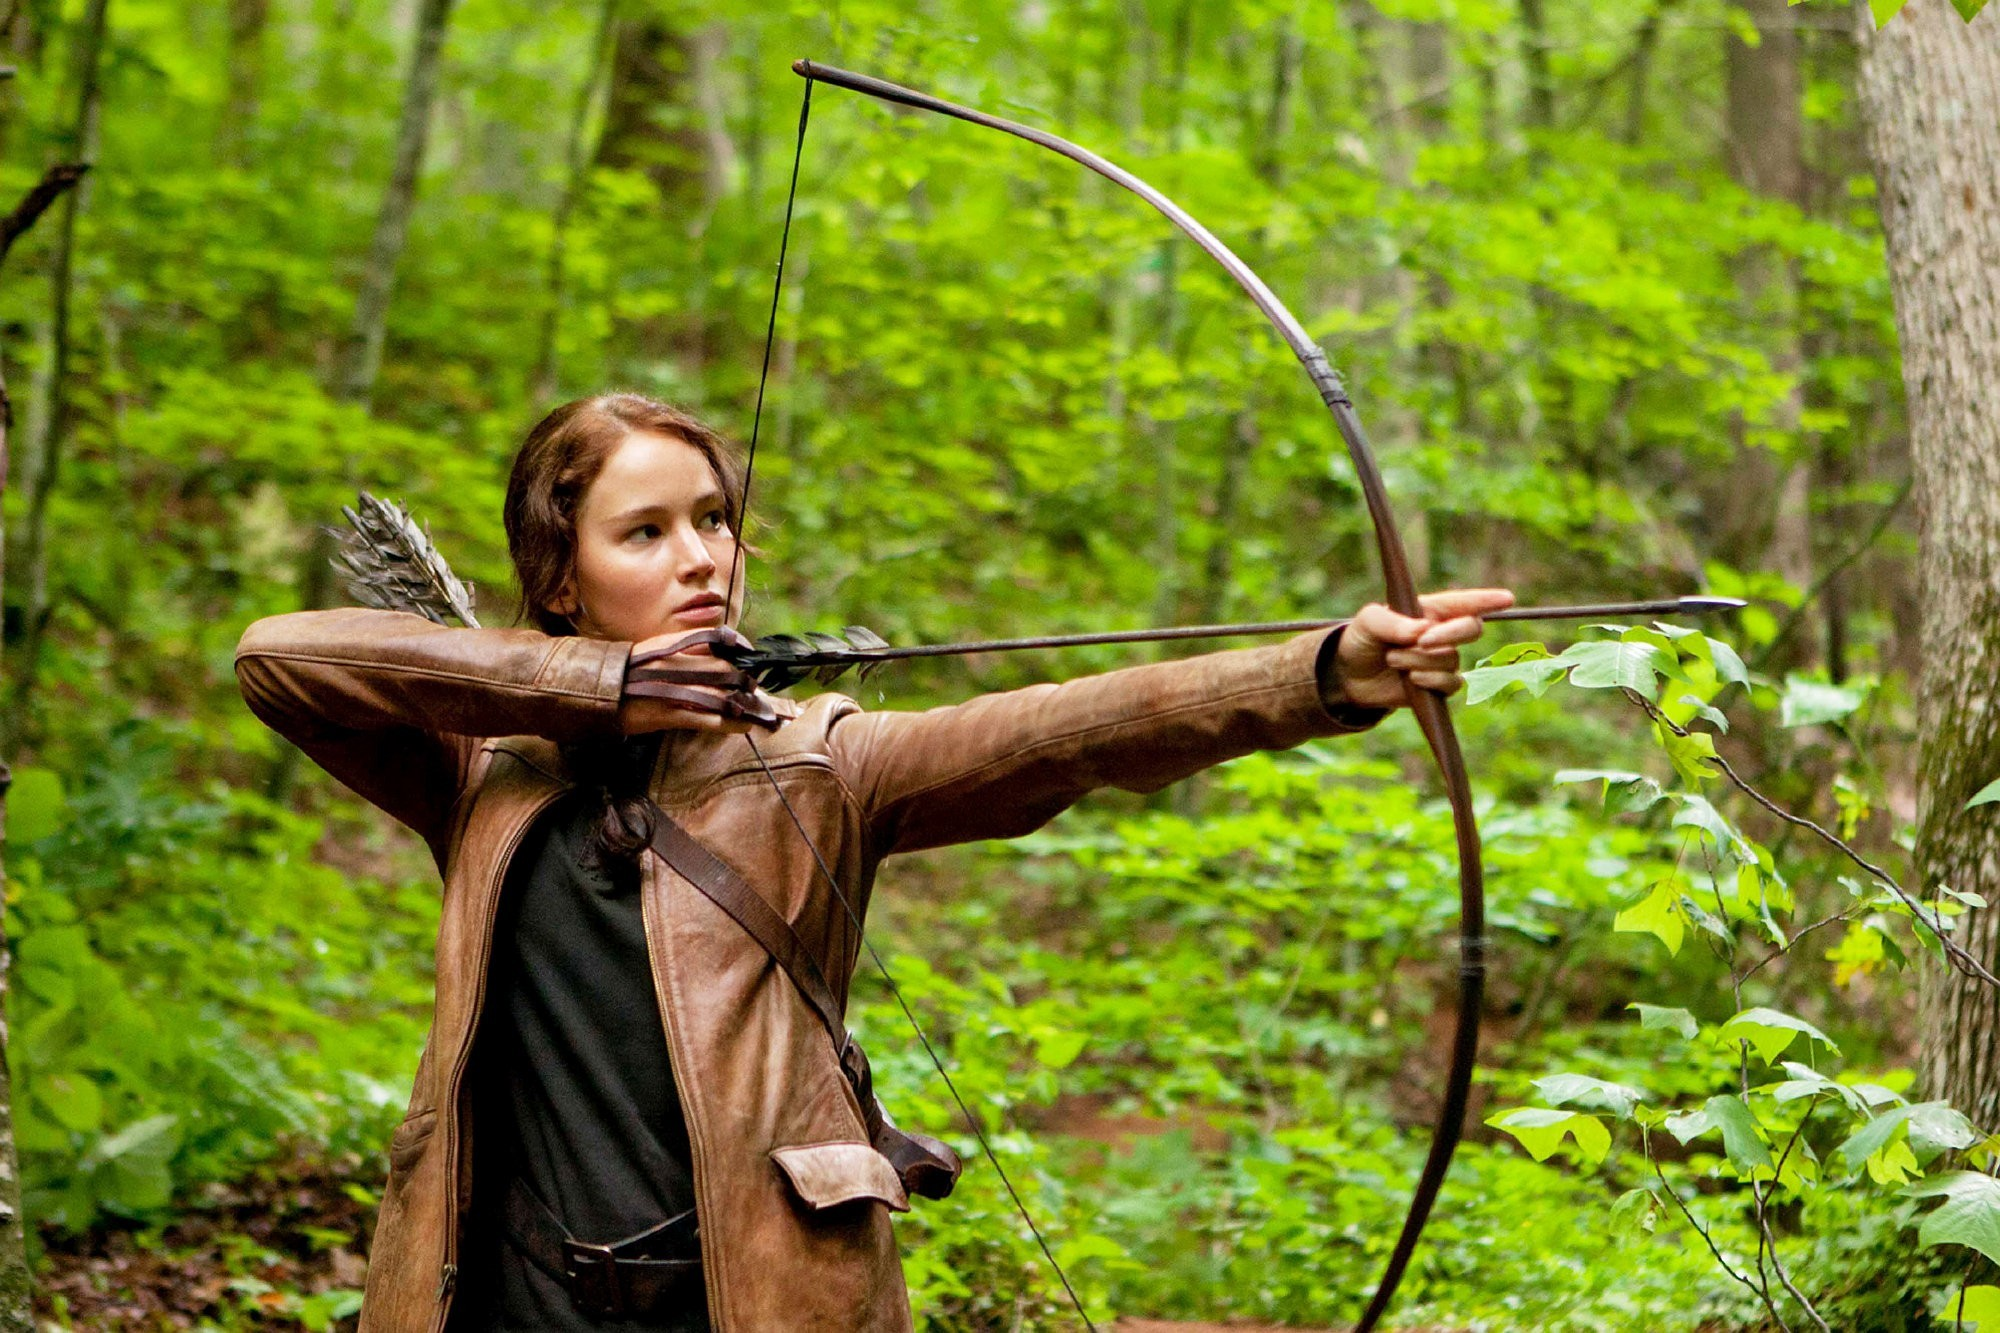 Jennifer lawrence stars as katniss everdeen in the hunger games likewise girl scout cookie selling coloring pages 1 on girl scout cookie selling coloring pages also girl scout cookie selling coloring pages 2 on girl scout cookie selling coloring pages besides girl scout cookie selling coloring pages 3 on girl scout cookie selling coloring pages besides girl scout cookie selling coloring pages 4 on girl scout cookie selling coloring pages